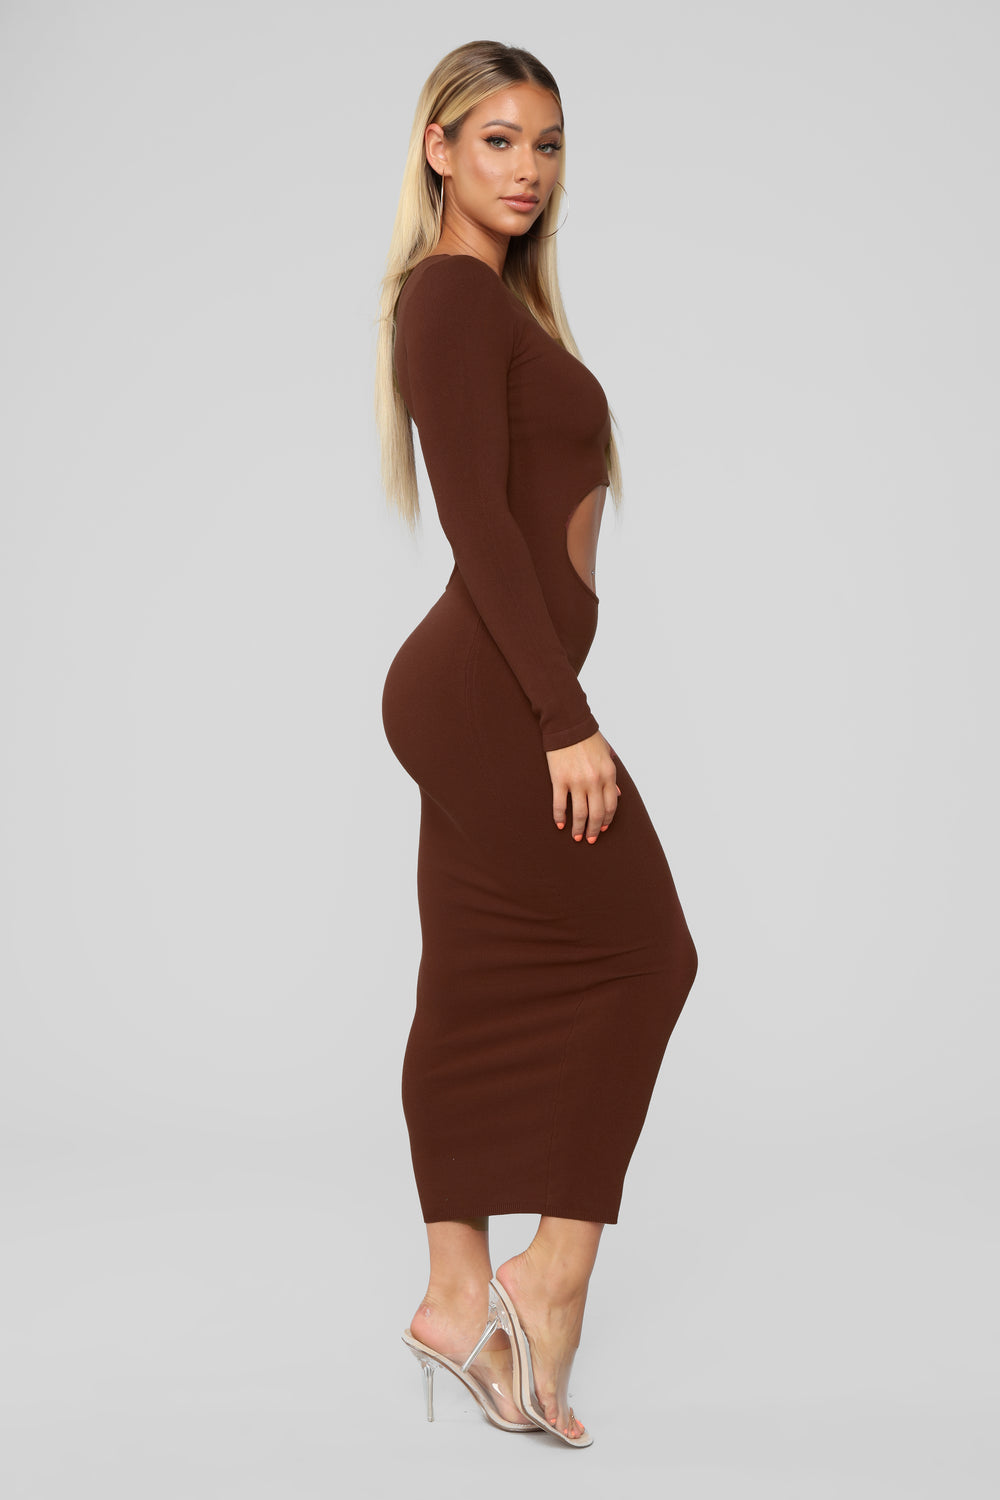 Cut Him Out Midi Dress - Chocolate